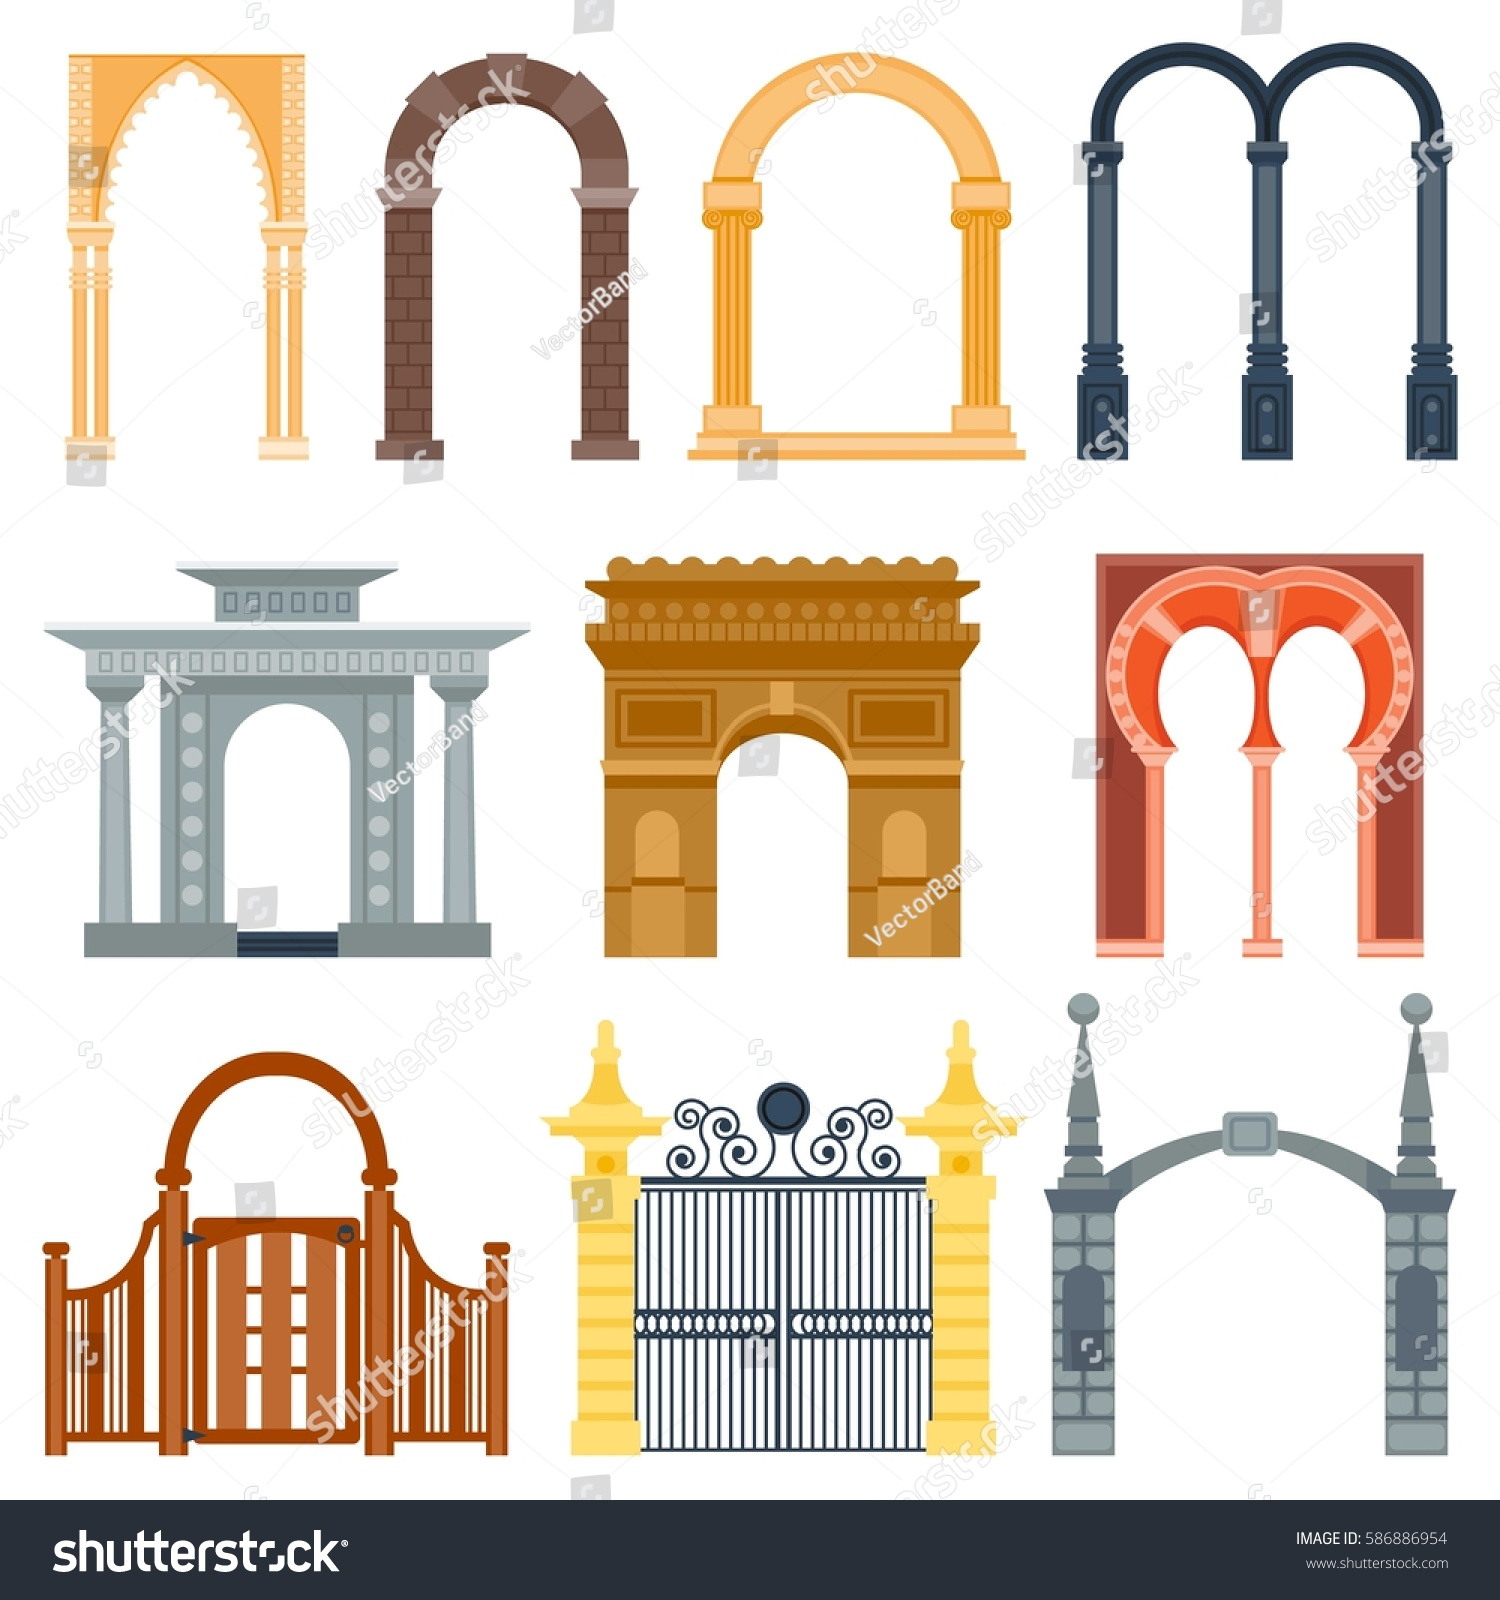 Arch design architecture construction frame classic stock vector 586886954 shutterstock - Arch main door designs ...